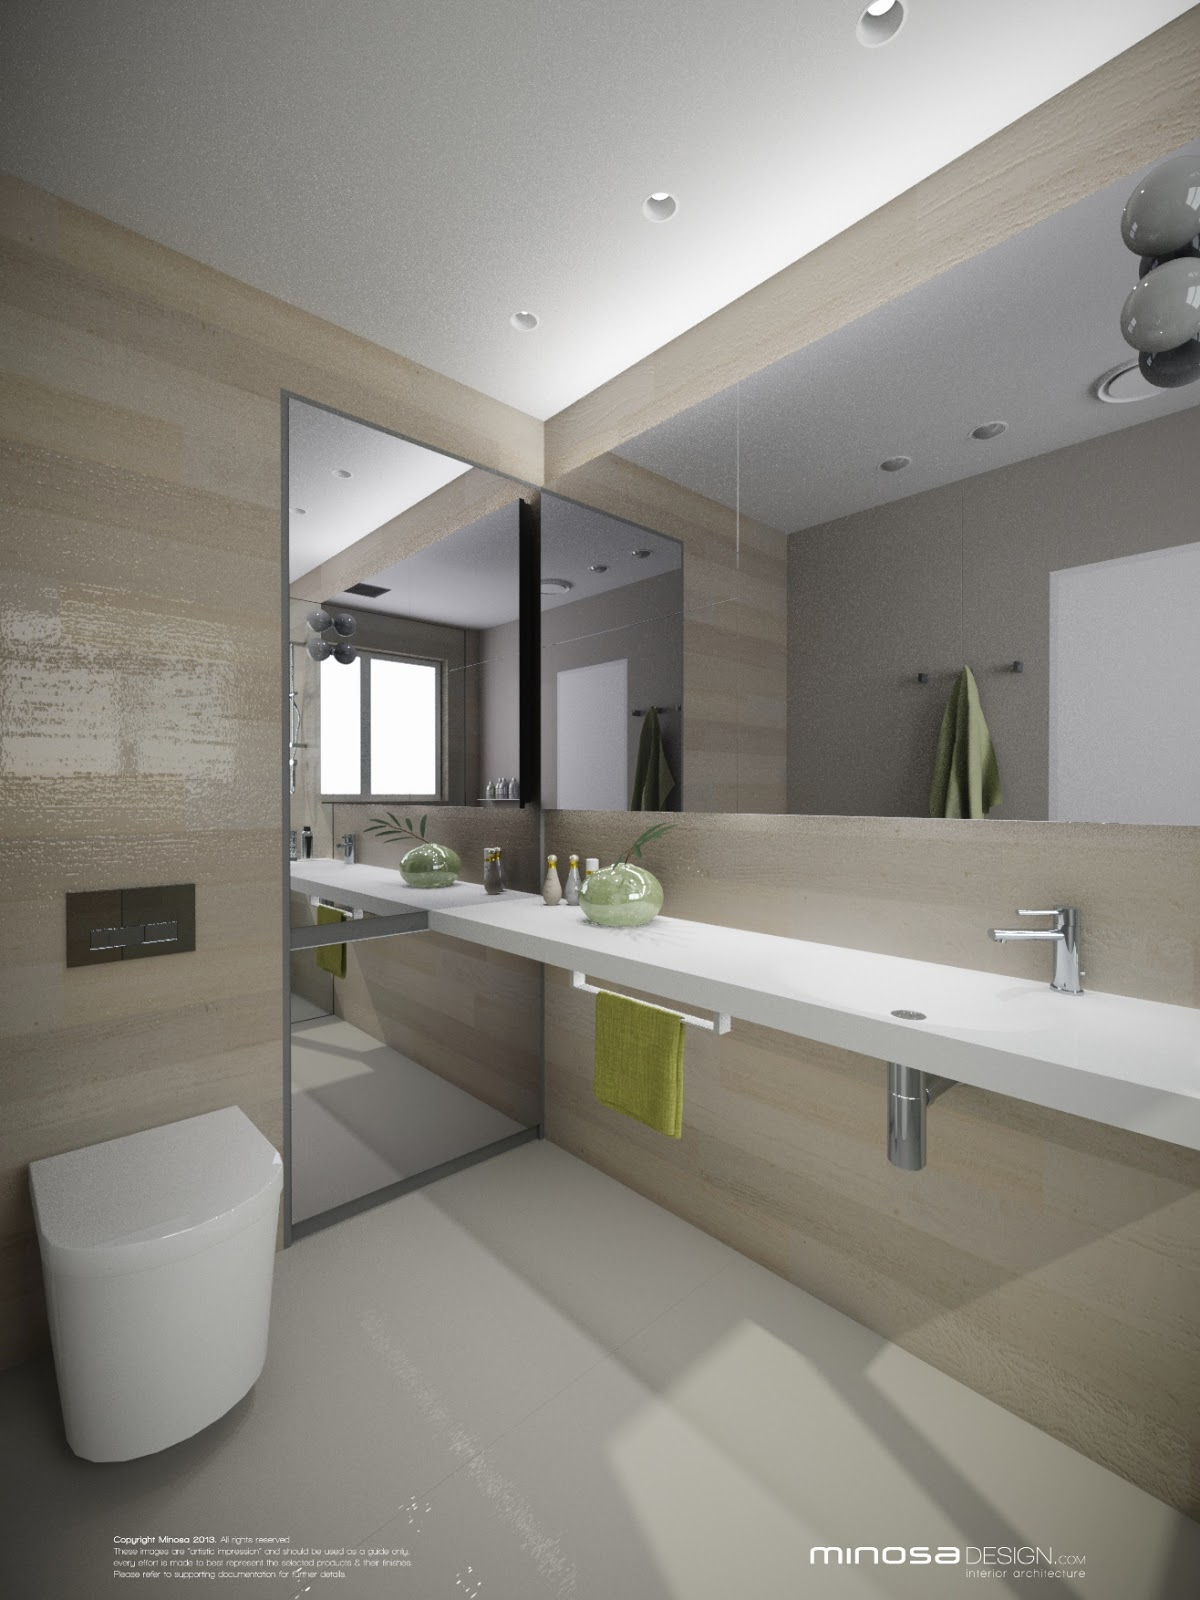 Minosa bringing sexy back the modern bathroom for Ensuite design plans